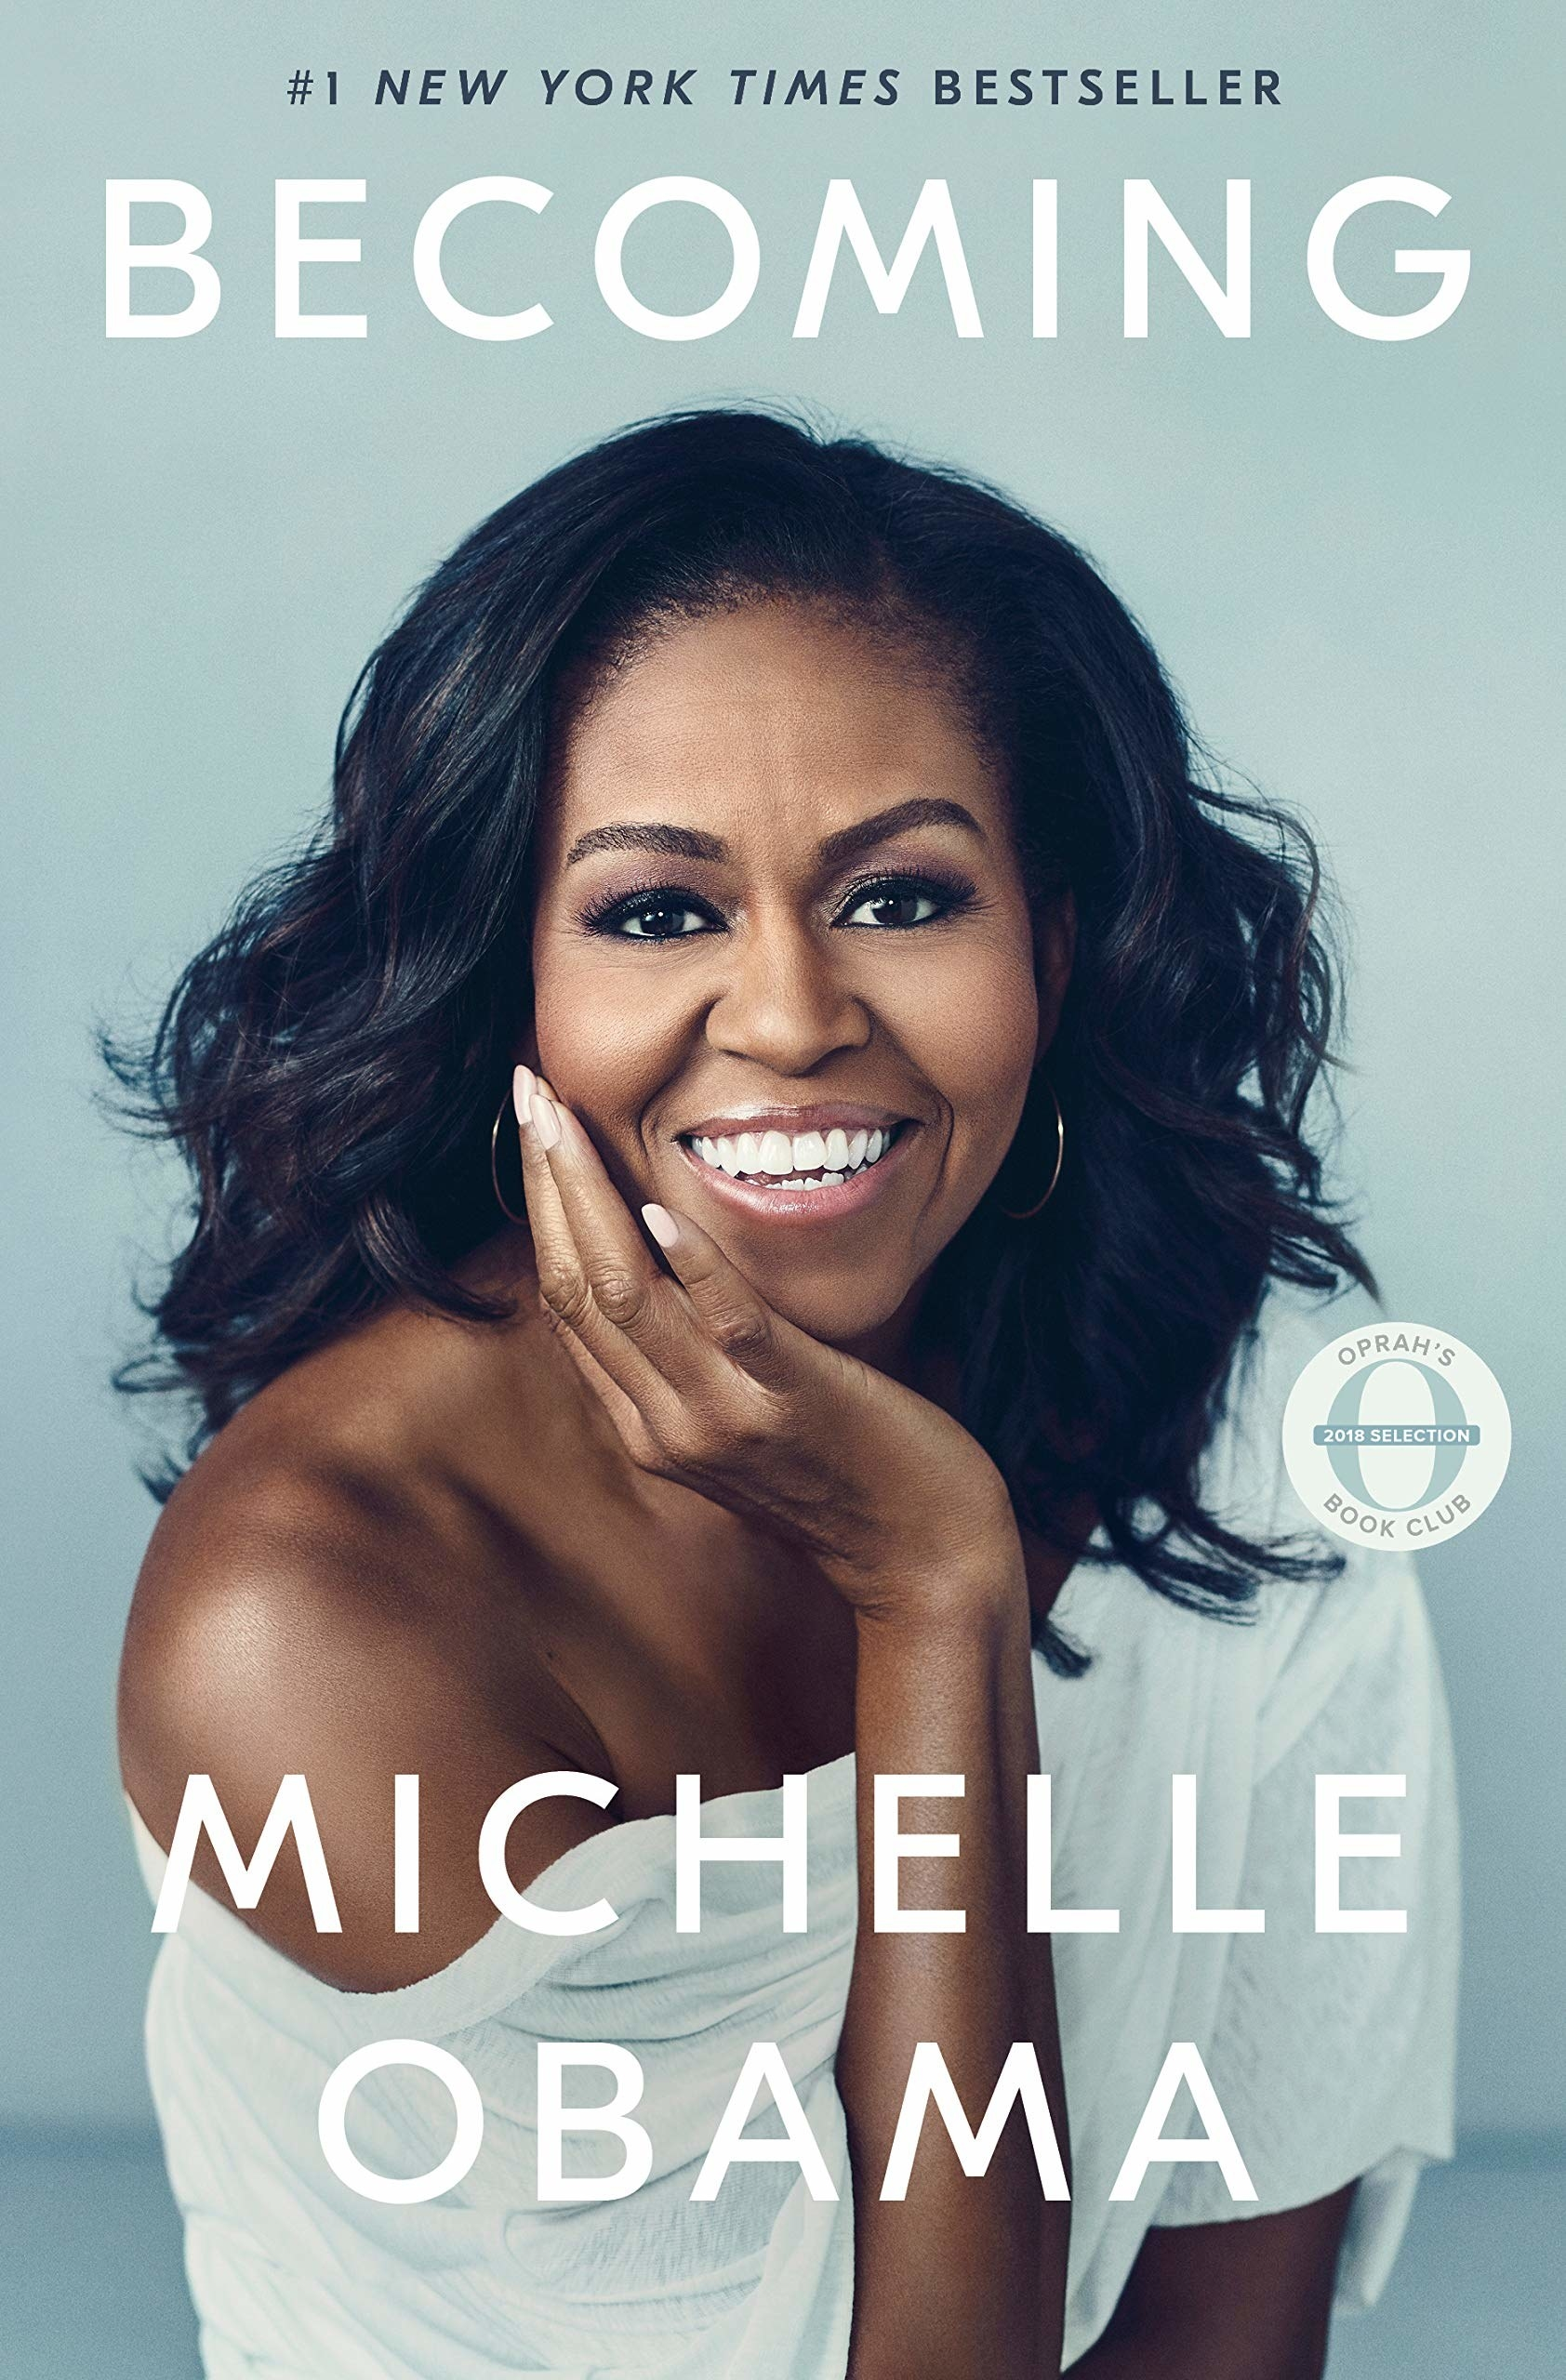 The book cover that features a photo of Michelle Obama smiling